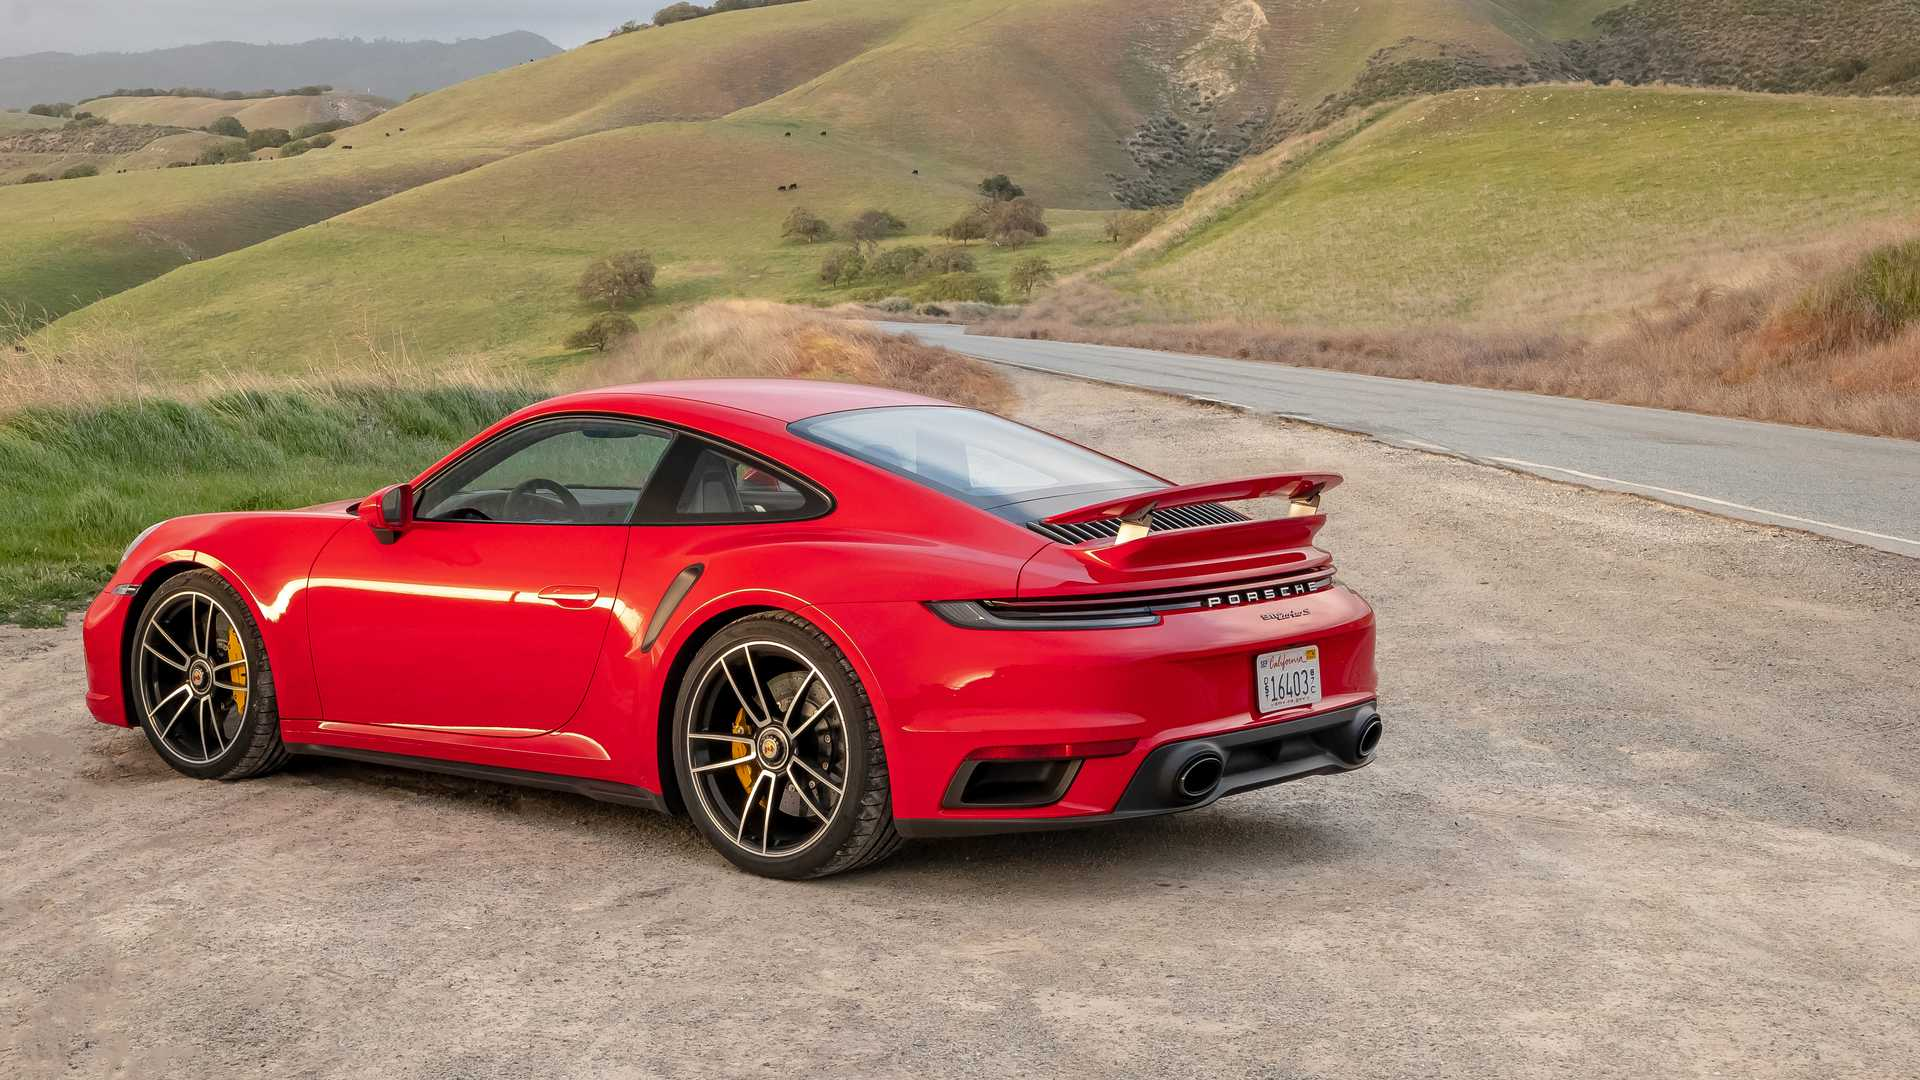 2021 Porsche 911 Turbo S Coupe: First Drive